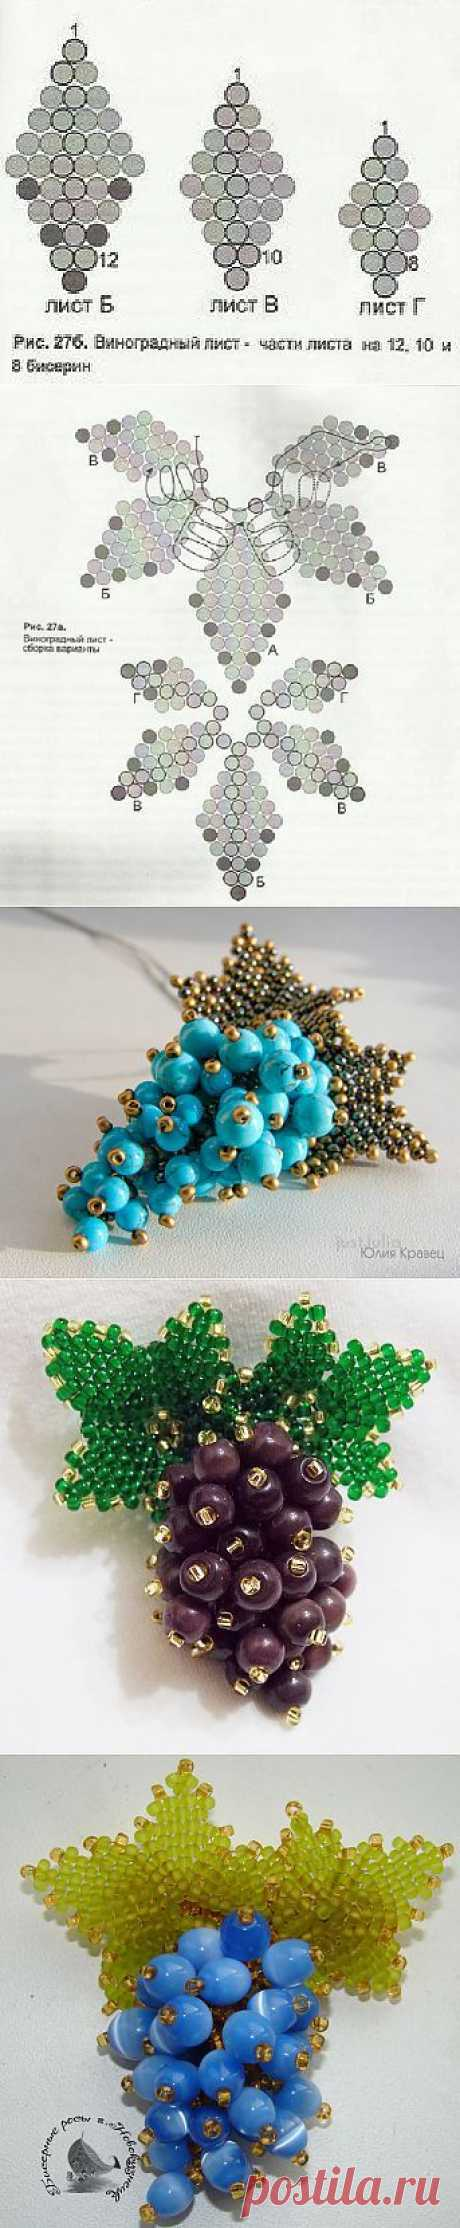 (8) A bunch from beads. Brooch. | Biser|magiya of beads | Beaded miracles | Posted | MK beads